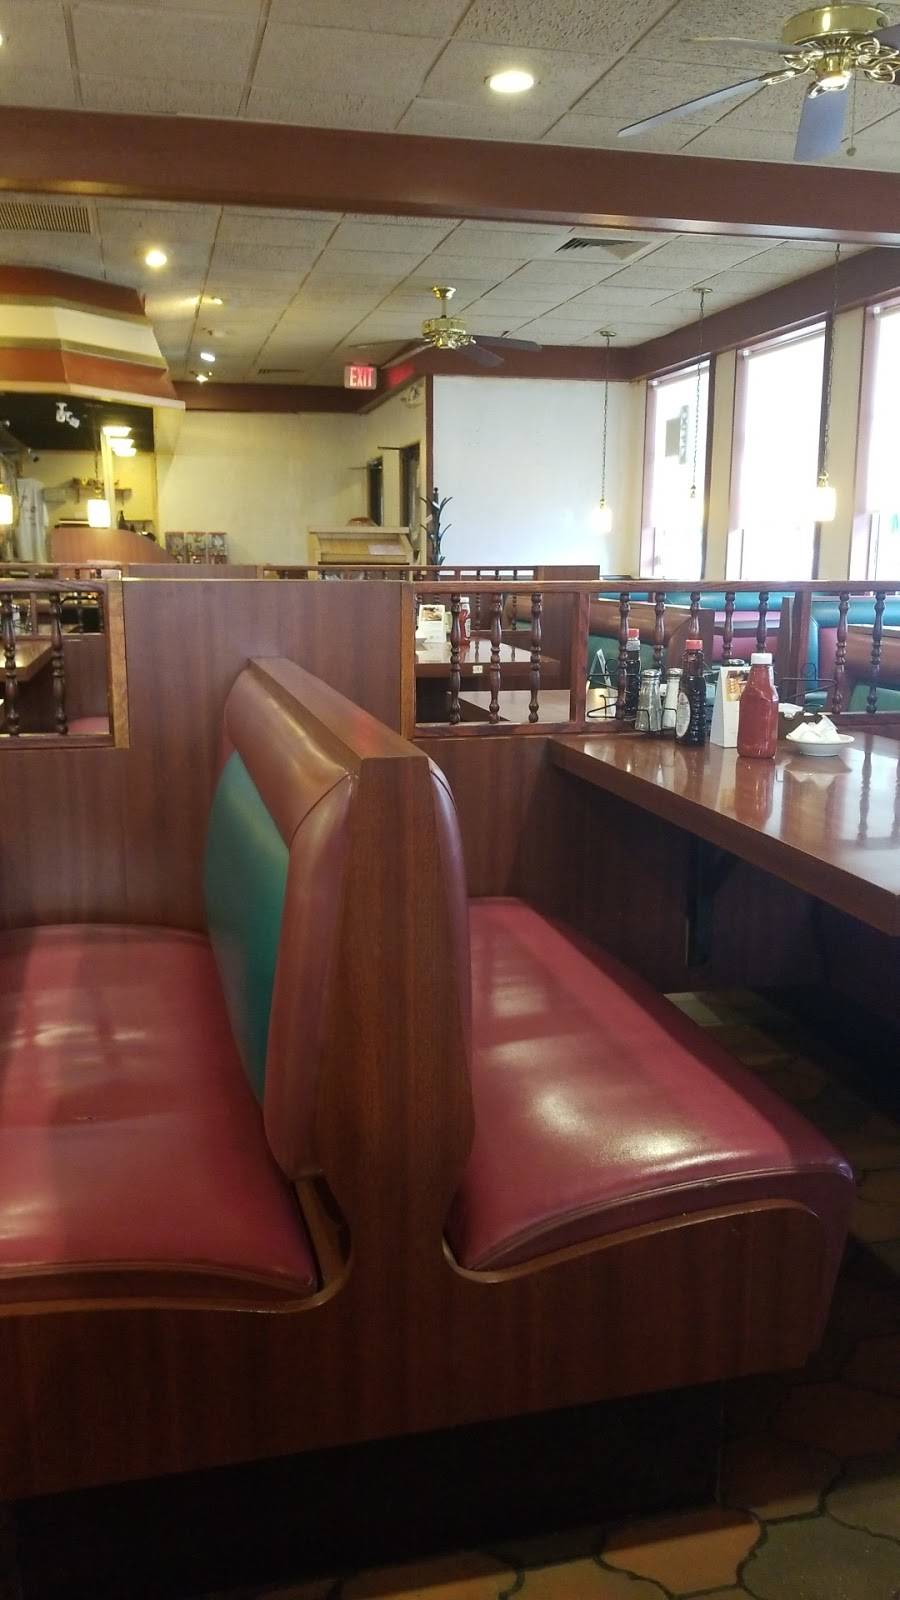 Albert S Family Dining Restaurant 7726 Cooley Lake Rd Waterford Twp Mi 48327 Usa